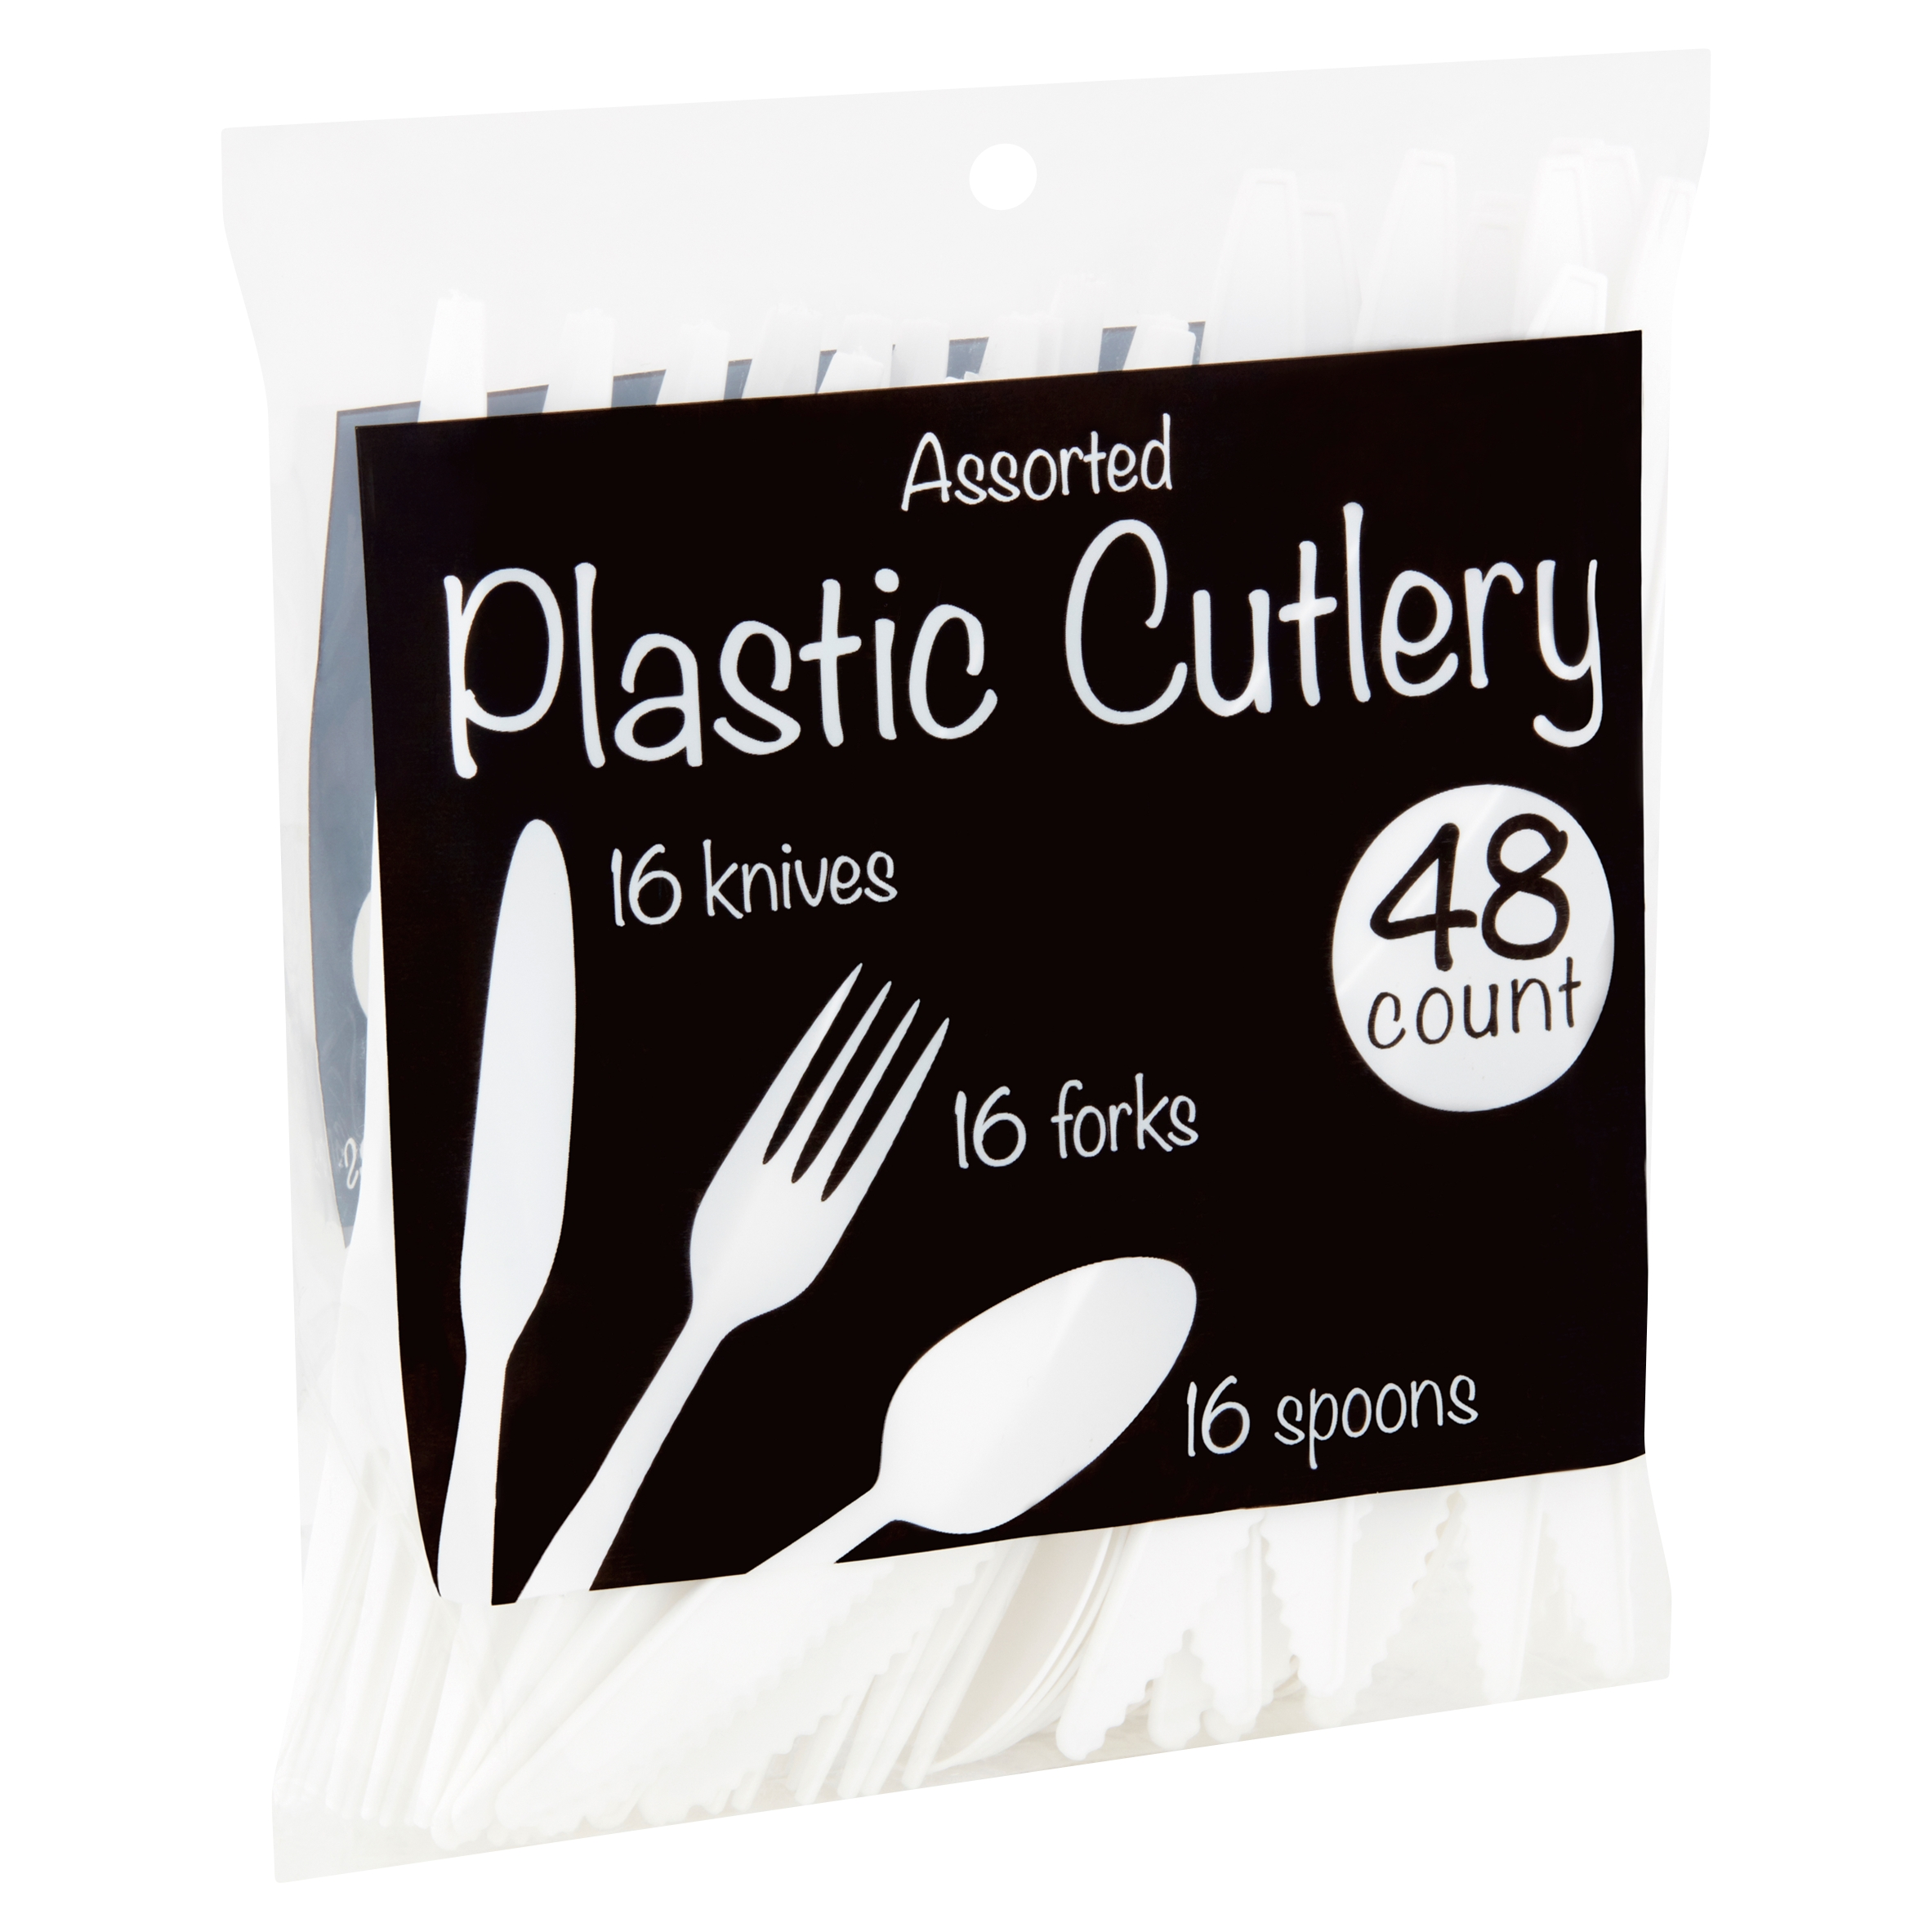 Assorted Plastic Cutlery, 48 count